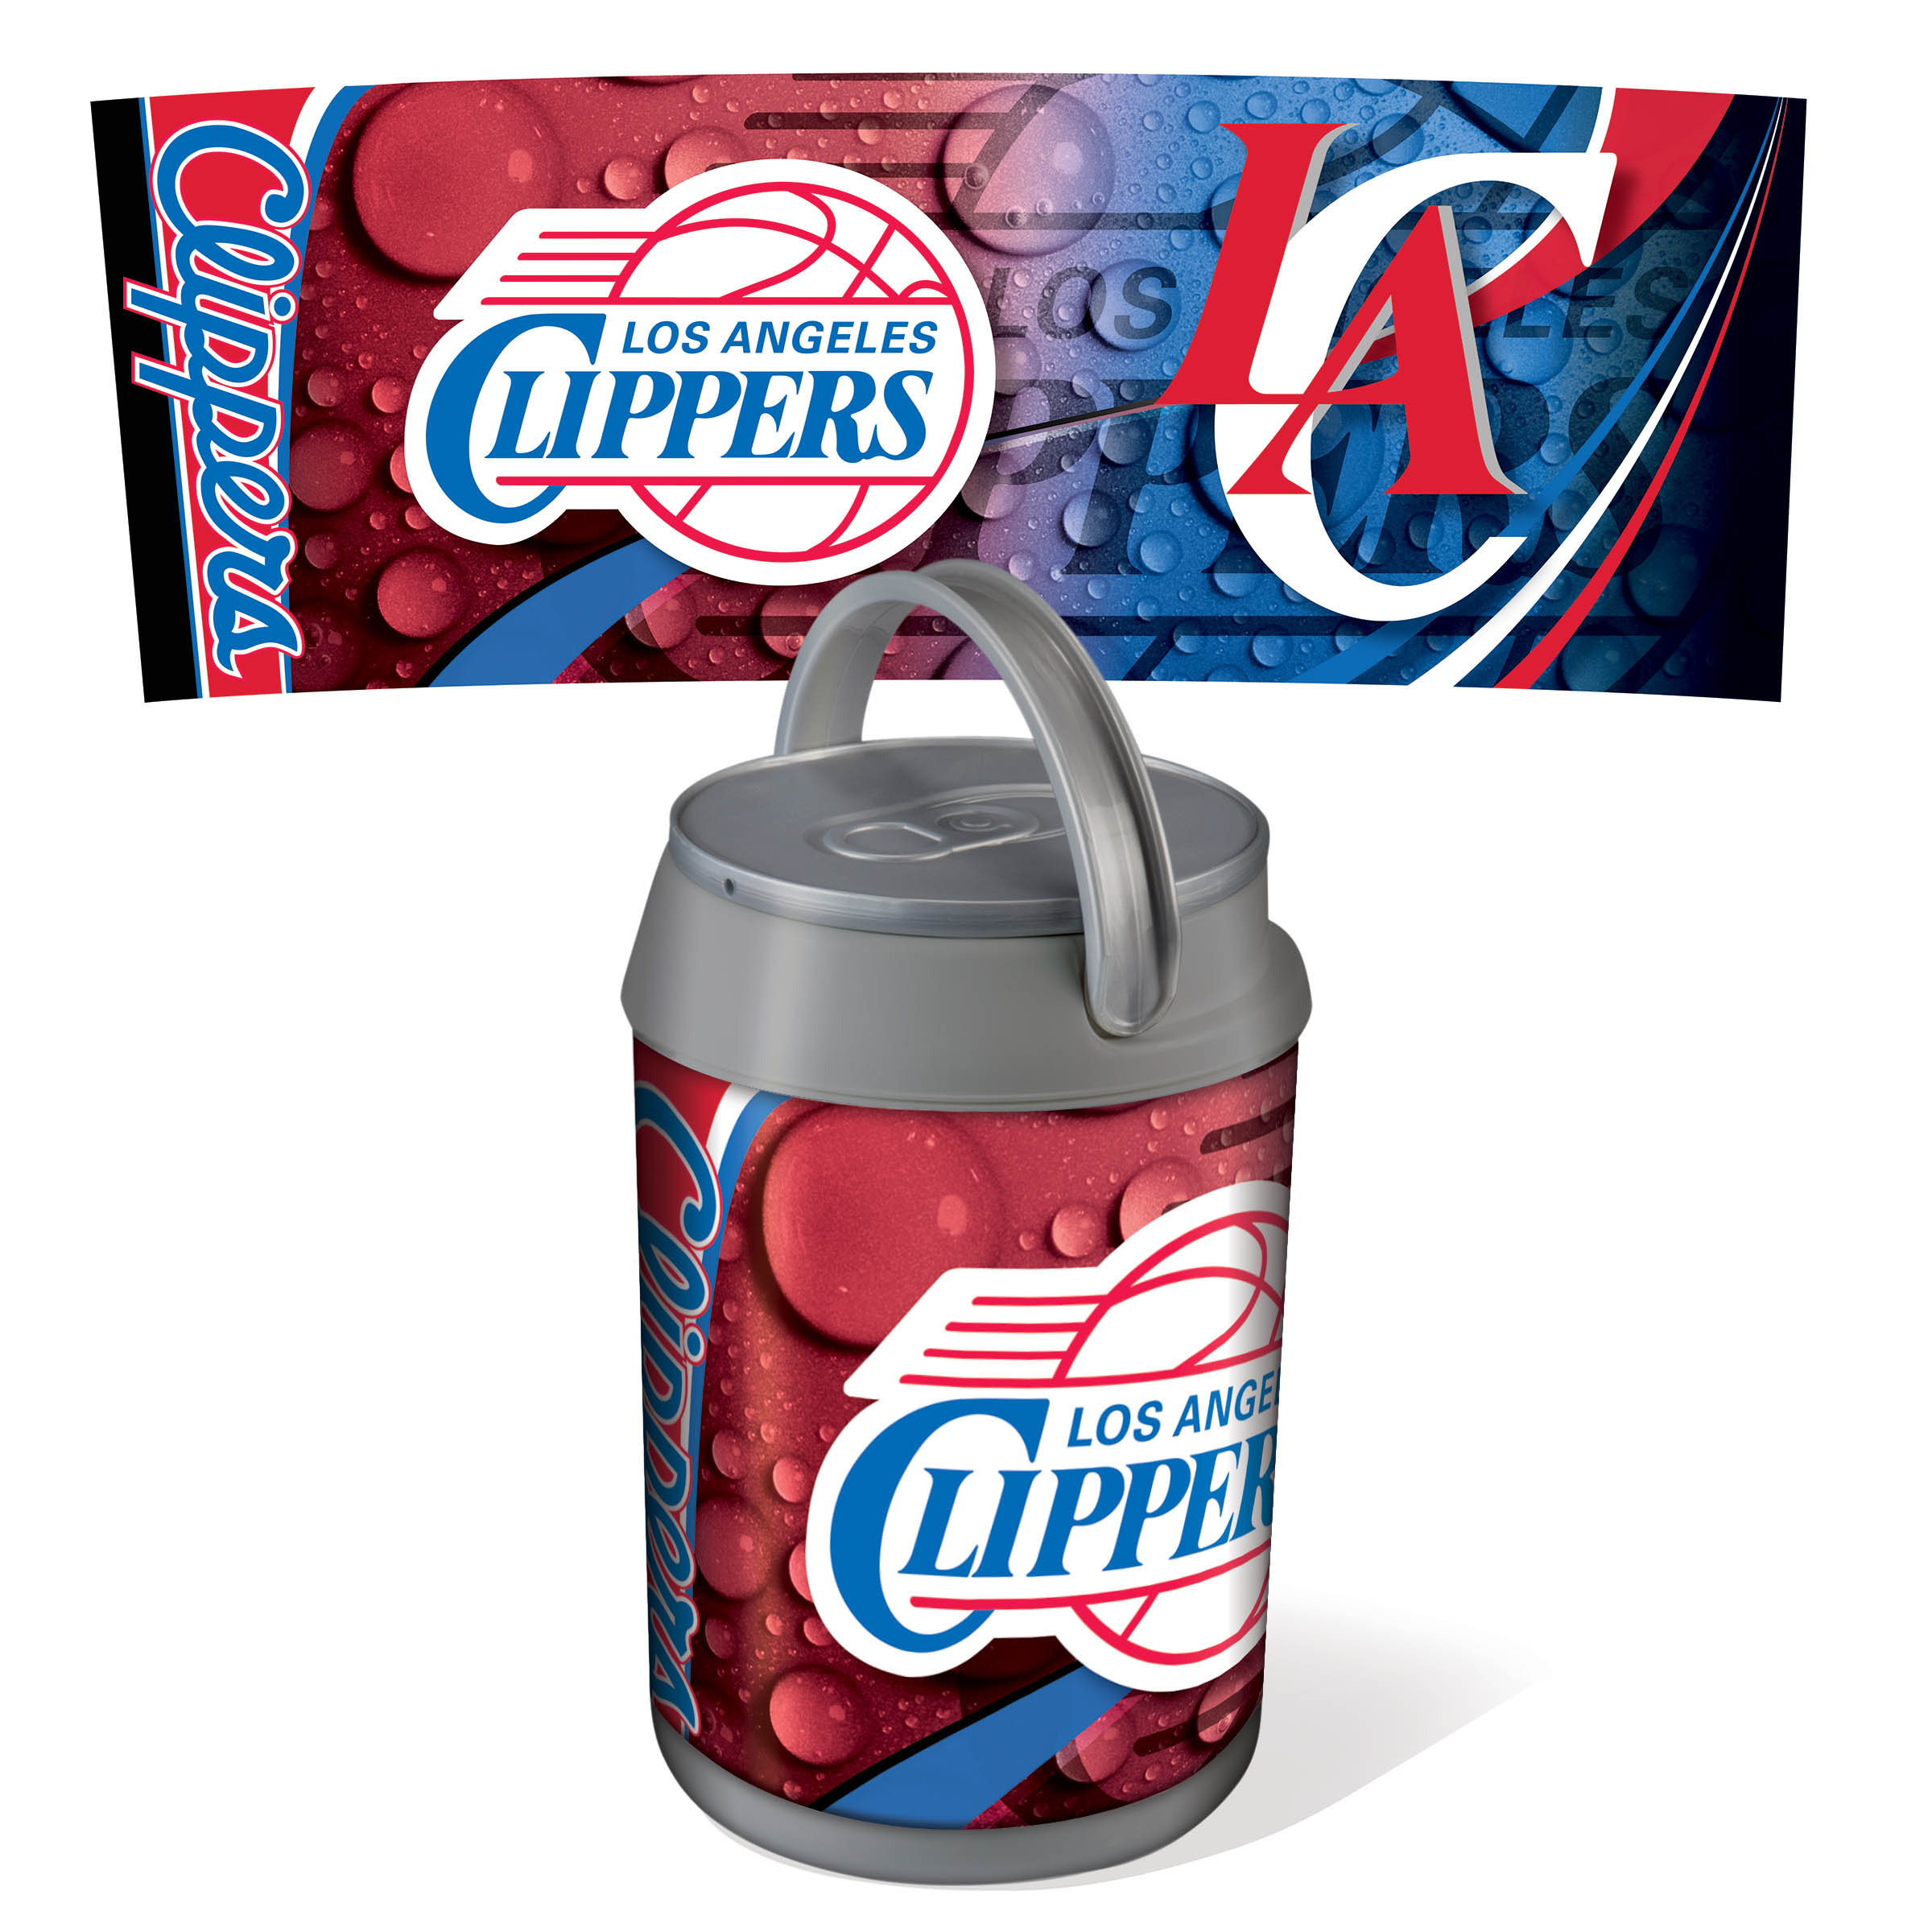 Picnic Time Mini Can Cooler - Silver/Gray (Los Angeles Clippers) Digital Print PartNumber: 00601675000P KsnValue: 00601675000 MfgPartNumber: 691-00-000-124-4